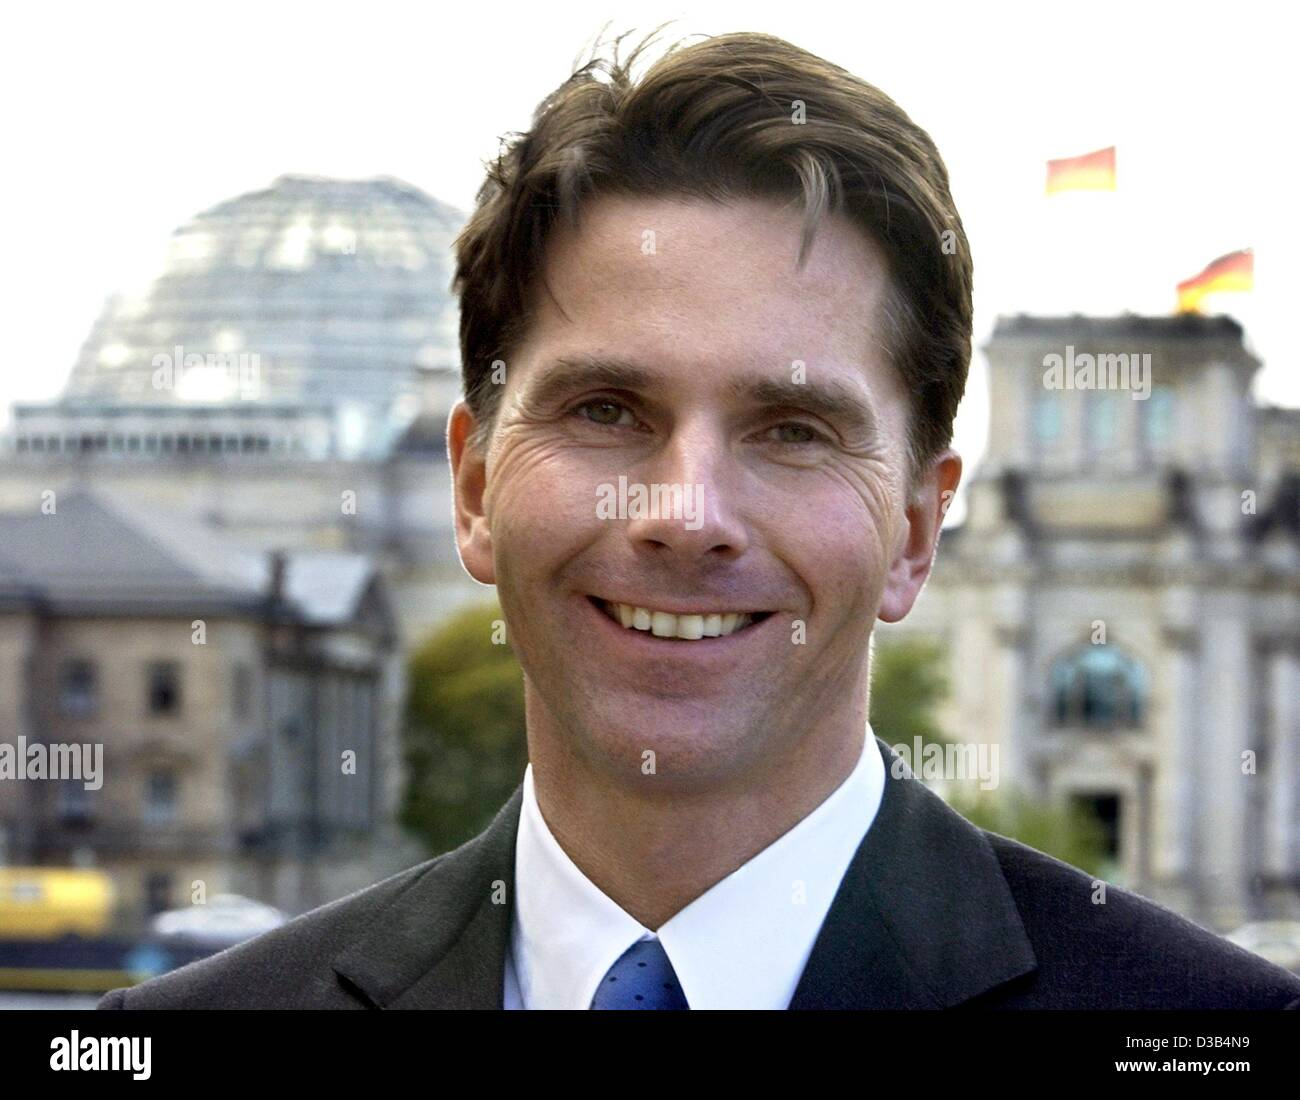 (dpa) - Bela Anda, new Government Spokesman of Chancellor Schroeder, pictured in front of the Reichstag building - Stock Image